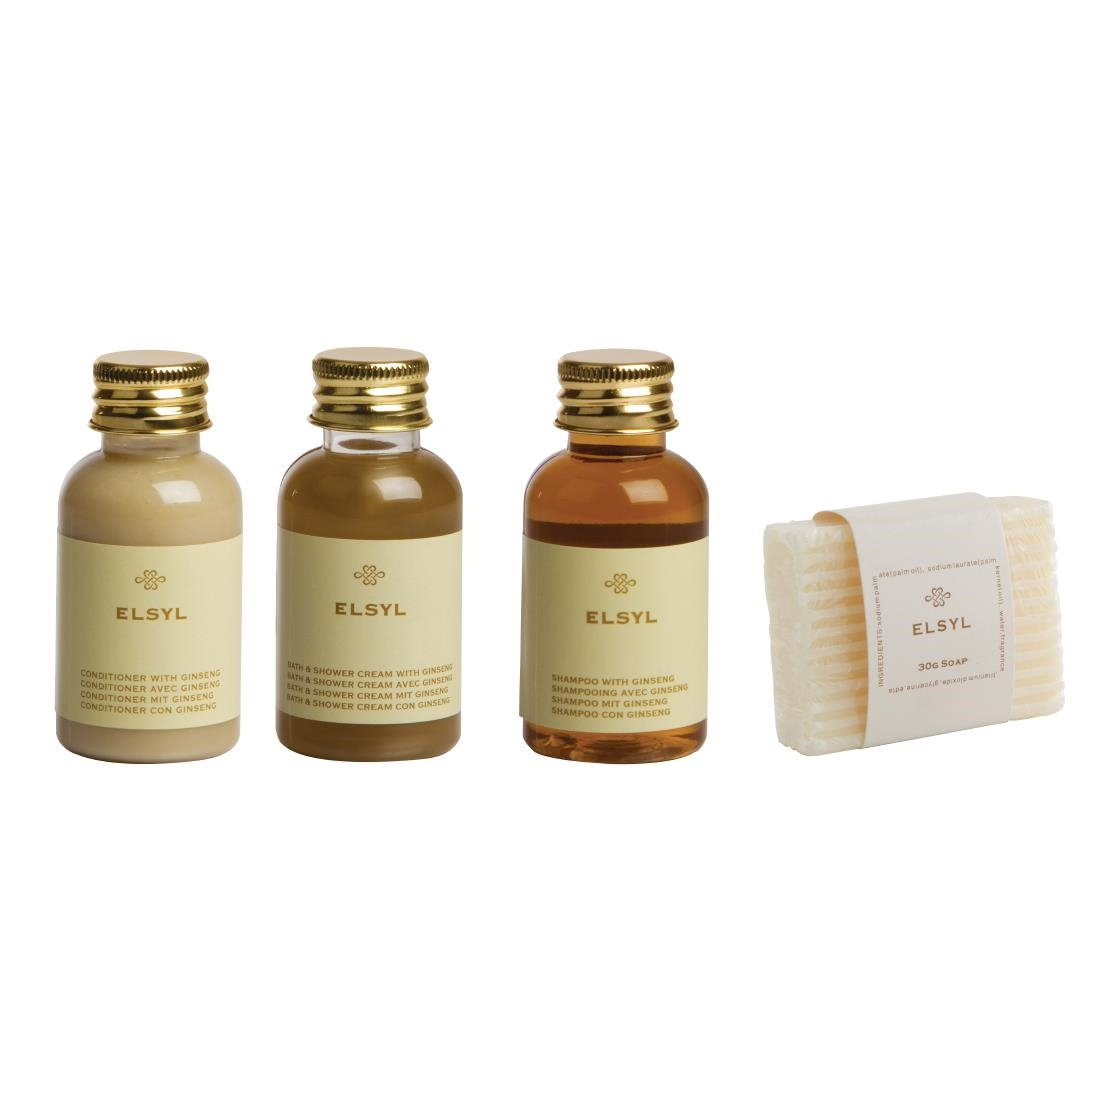 Image of Elsyl Toiletries Welcome Pack